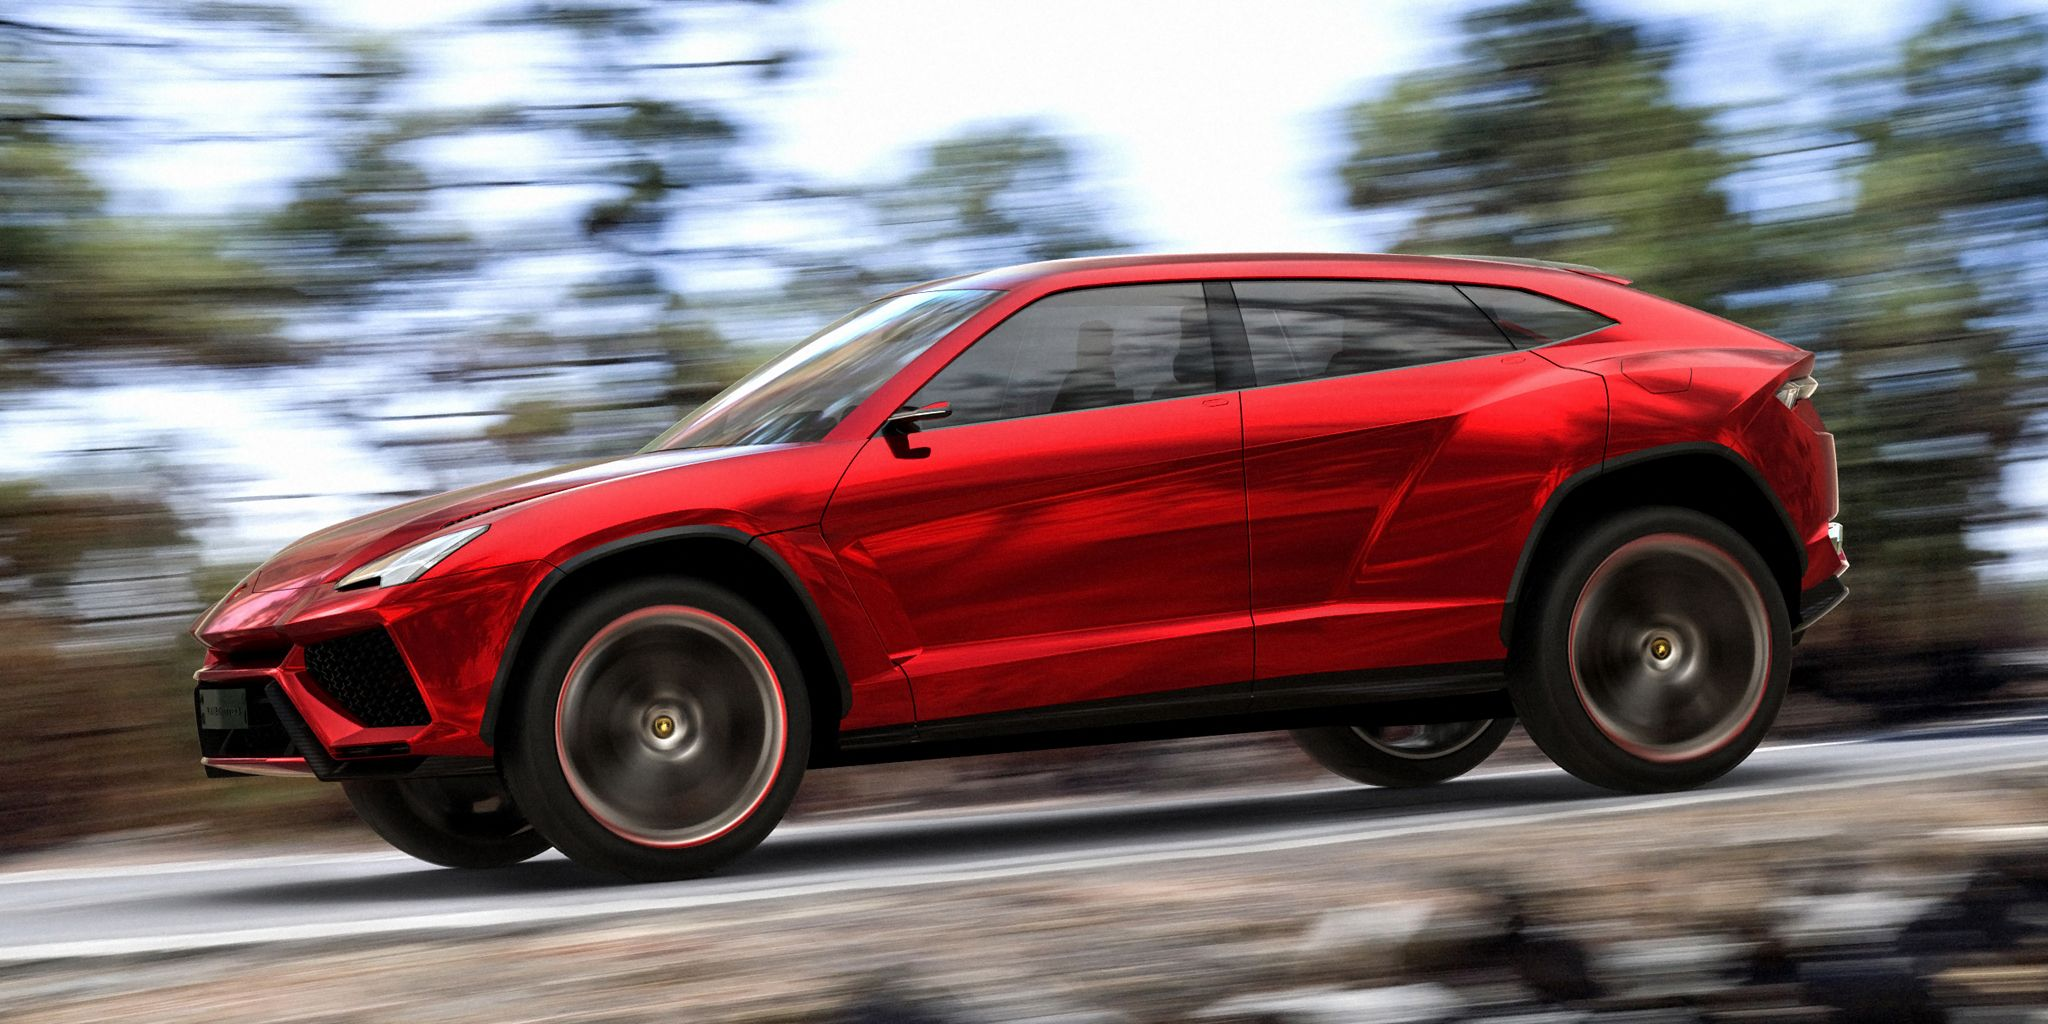 2019 Lamborghini Urus News Price Release Date Everything We Know